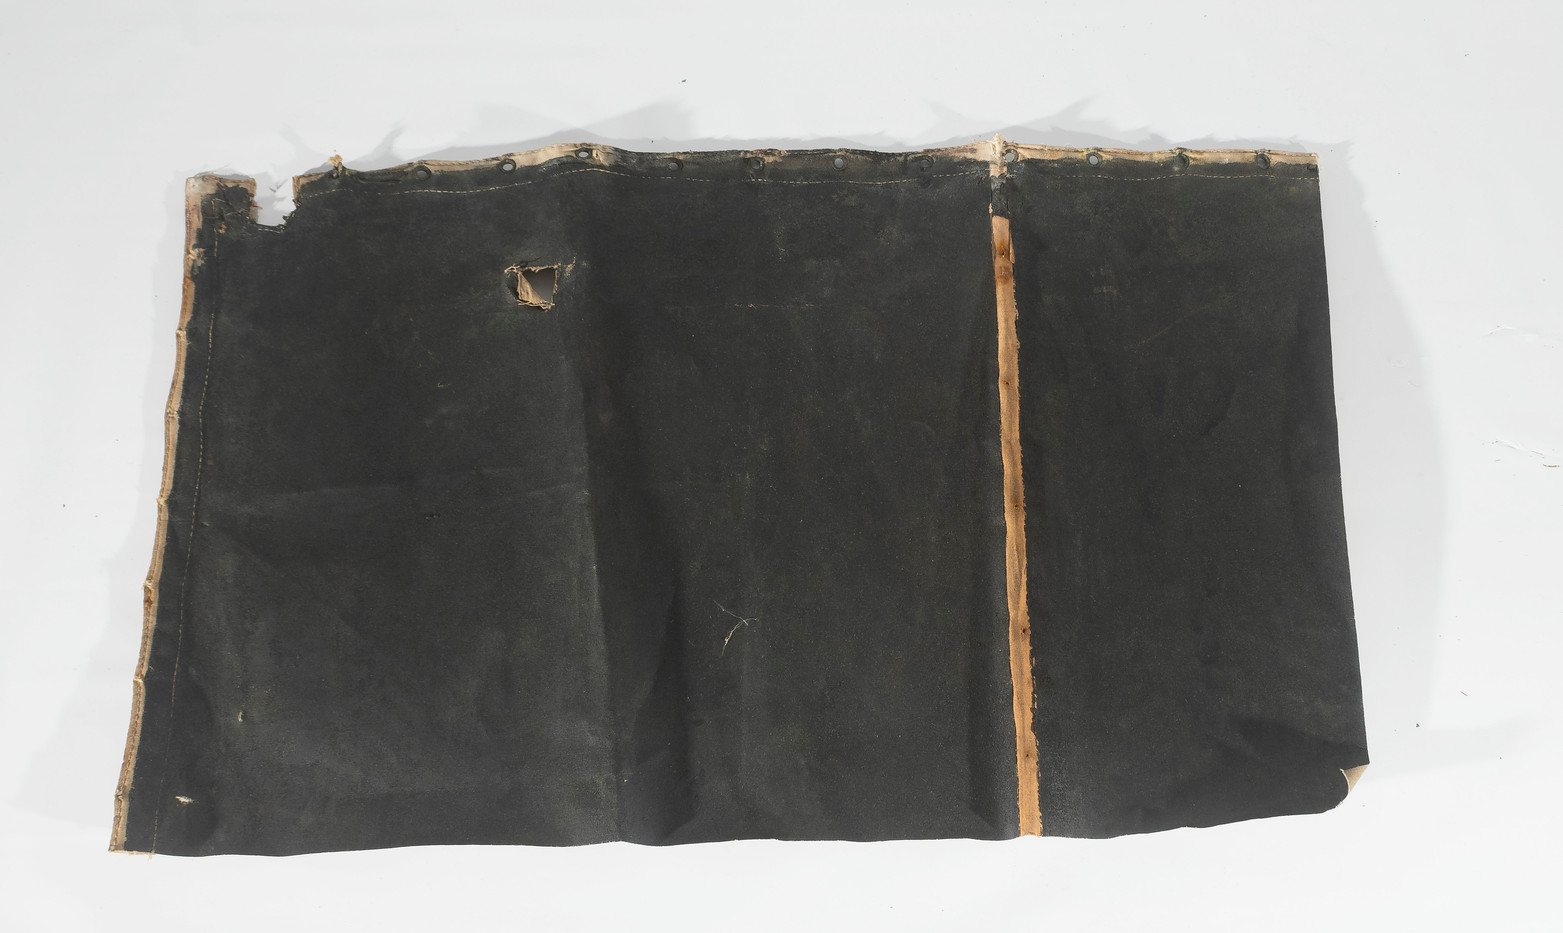 Voision 10 Fabric front.jpg